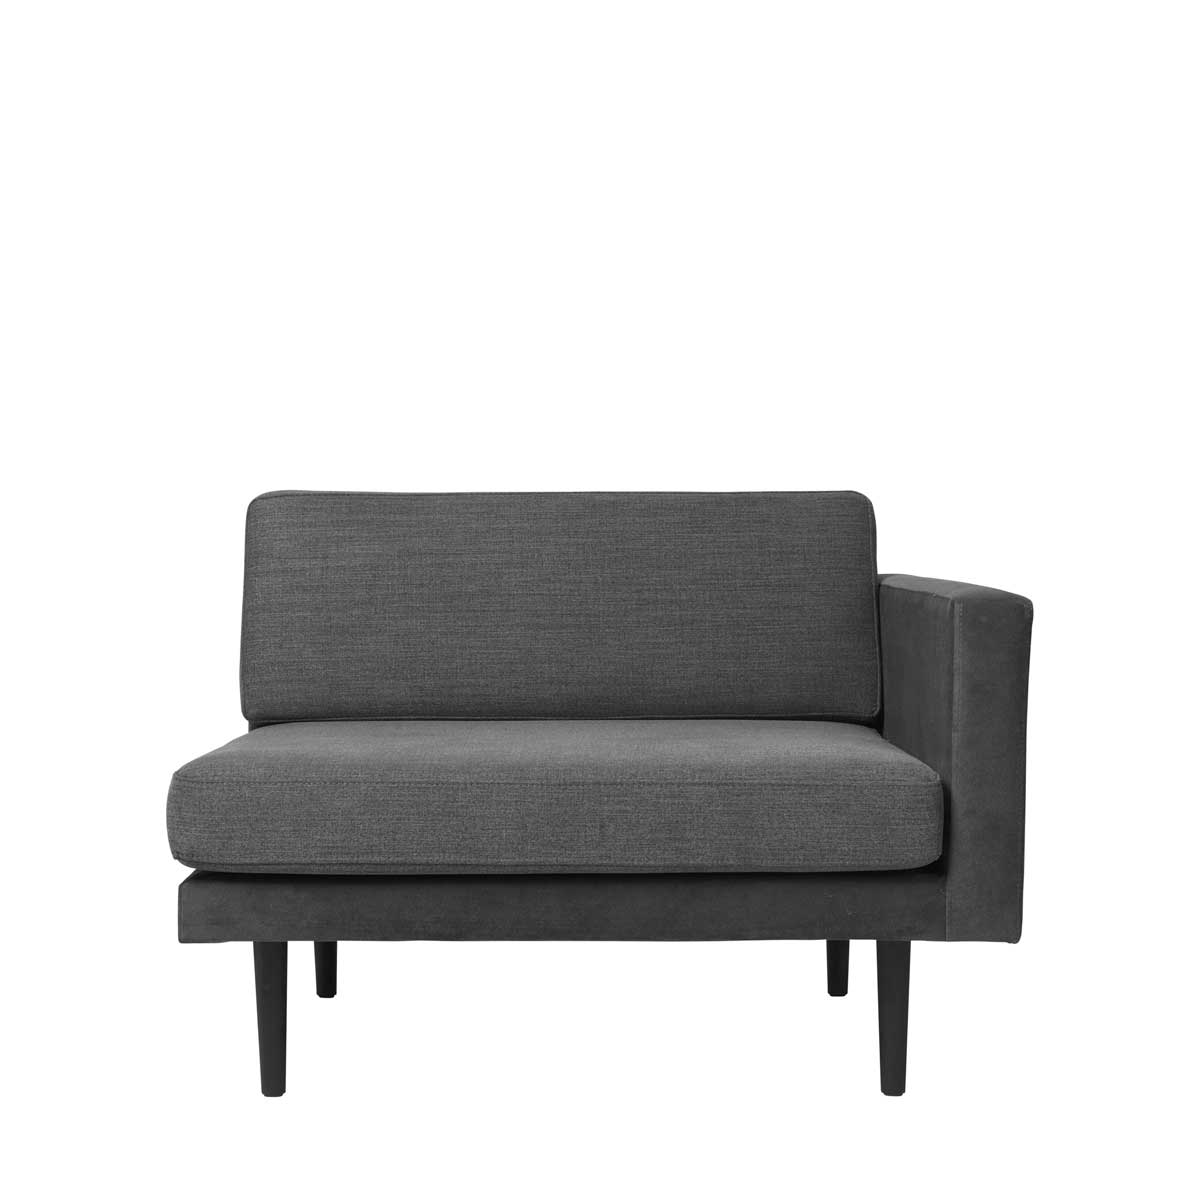 Ocean Sofa Modular Broste Copenhagen chair left